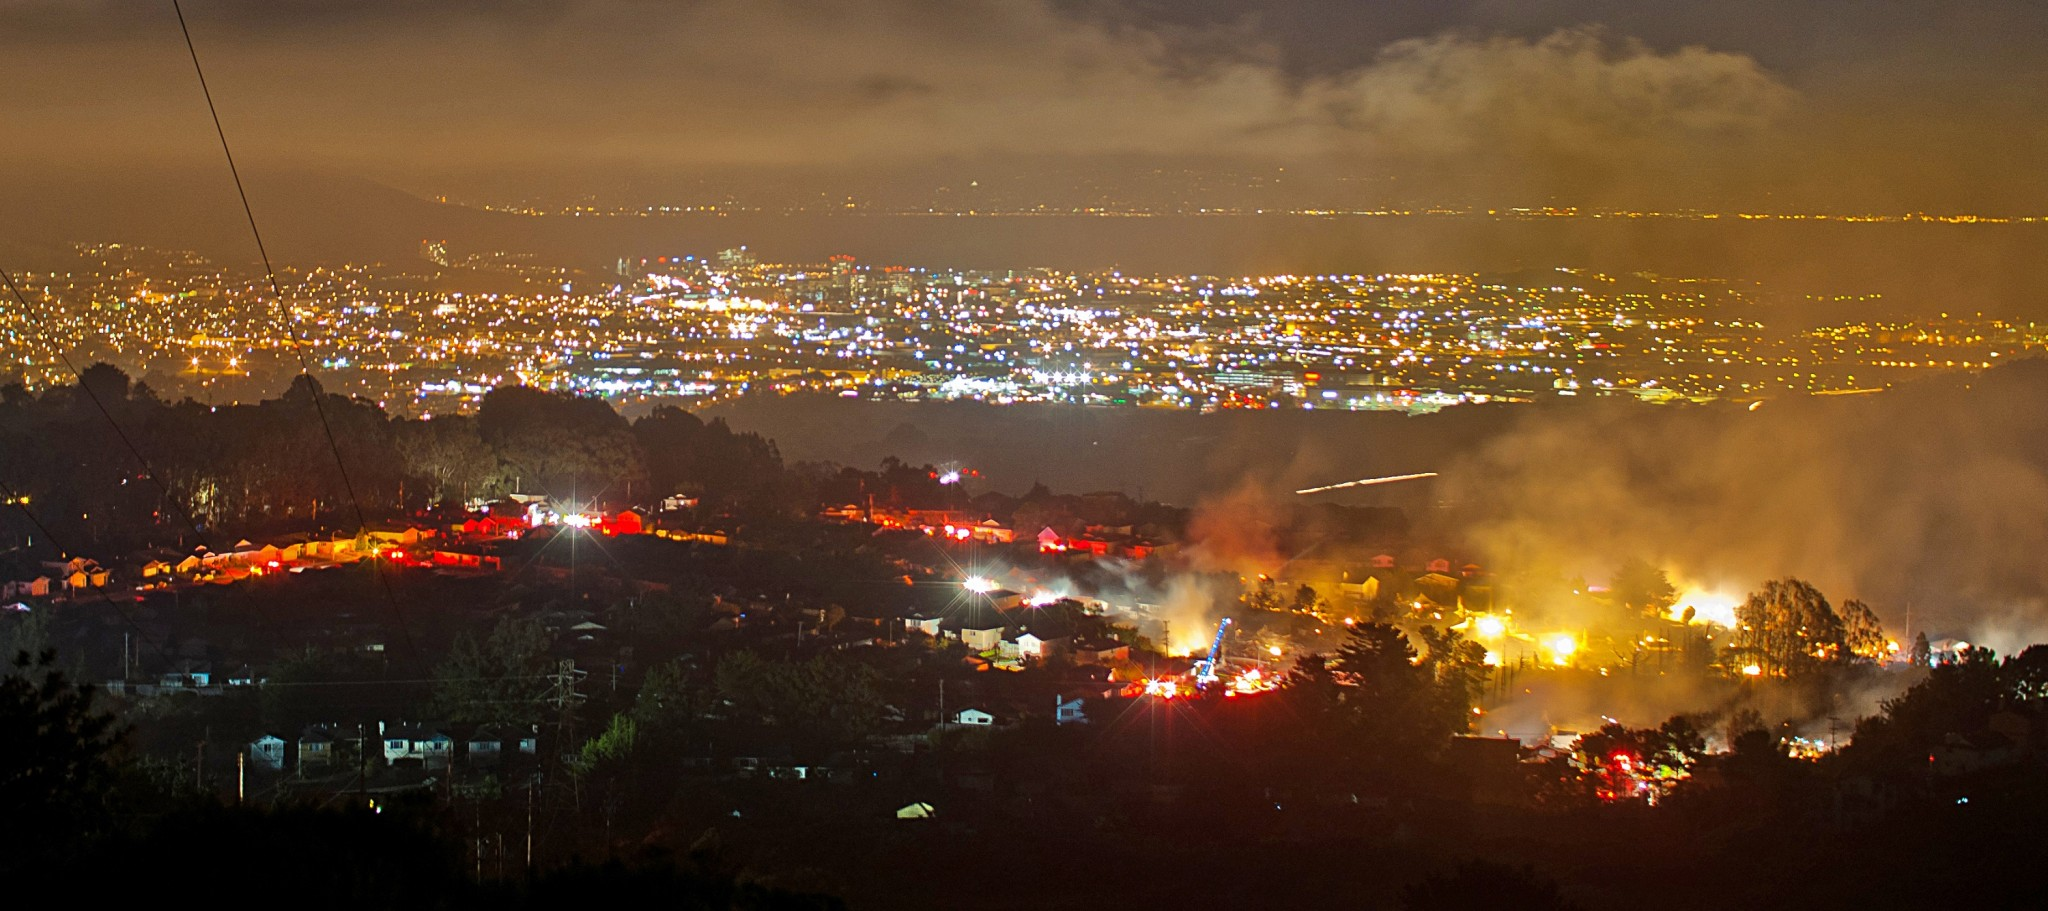 A fire burns in San Bruno, California following a deadly pipeline explosion in 2010. Photo: MisterOh // Wikimedia Commons.